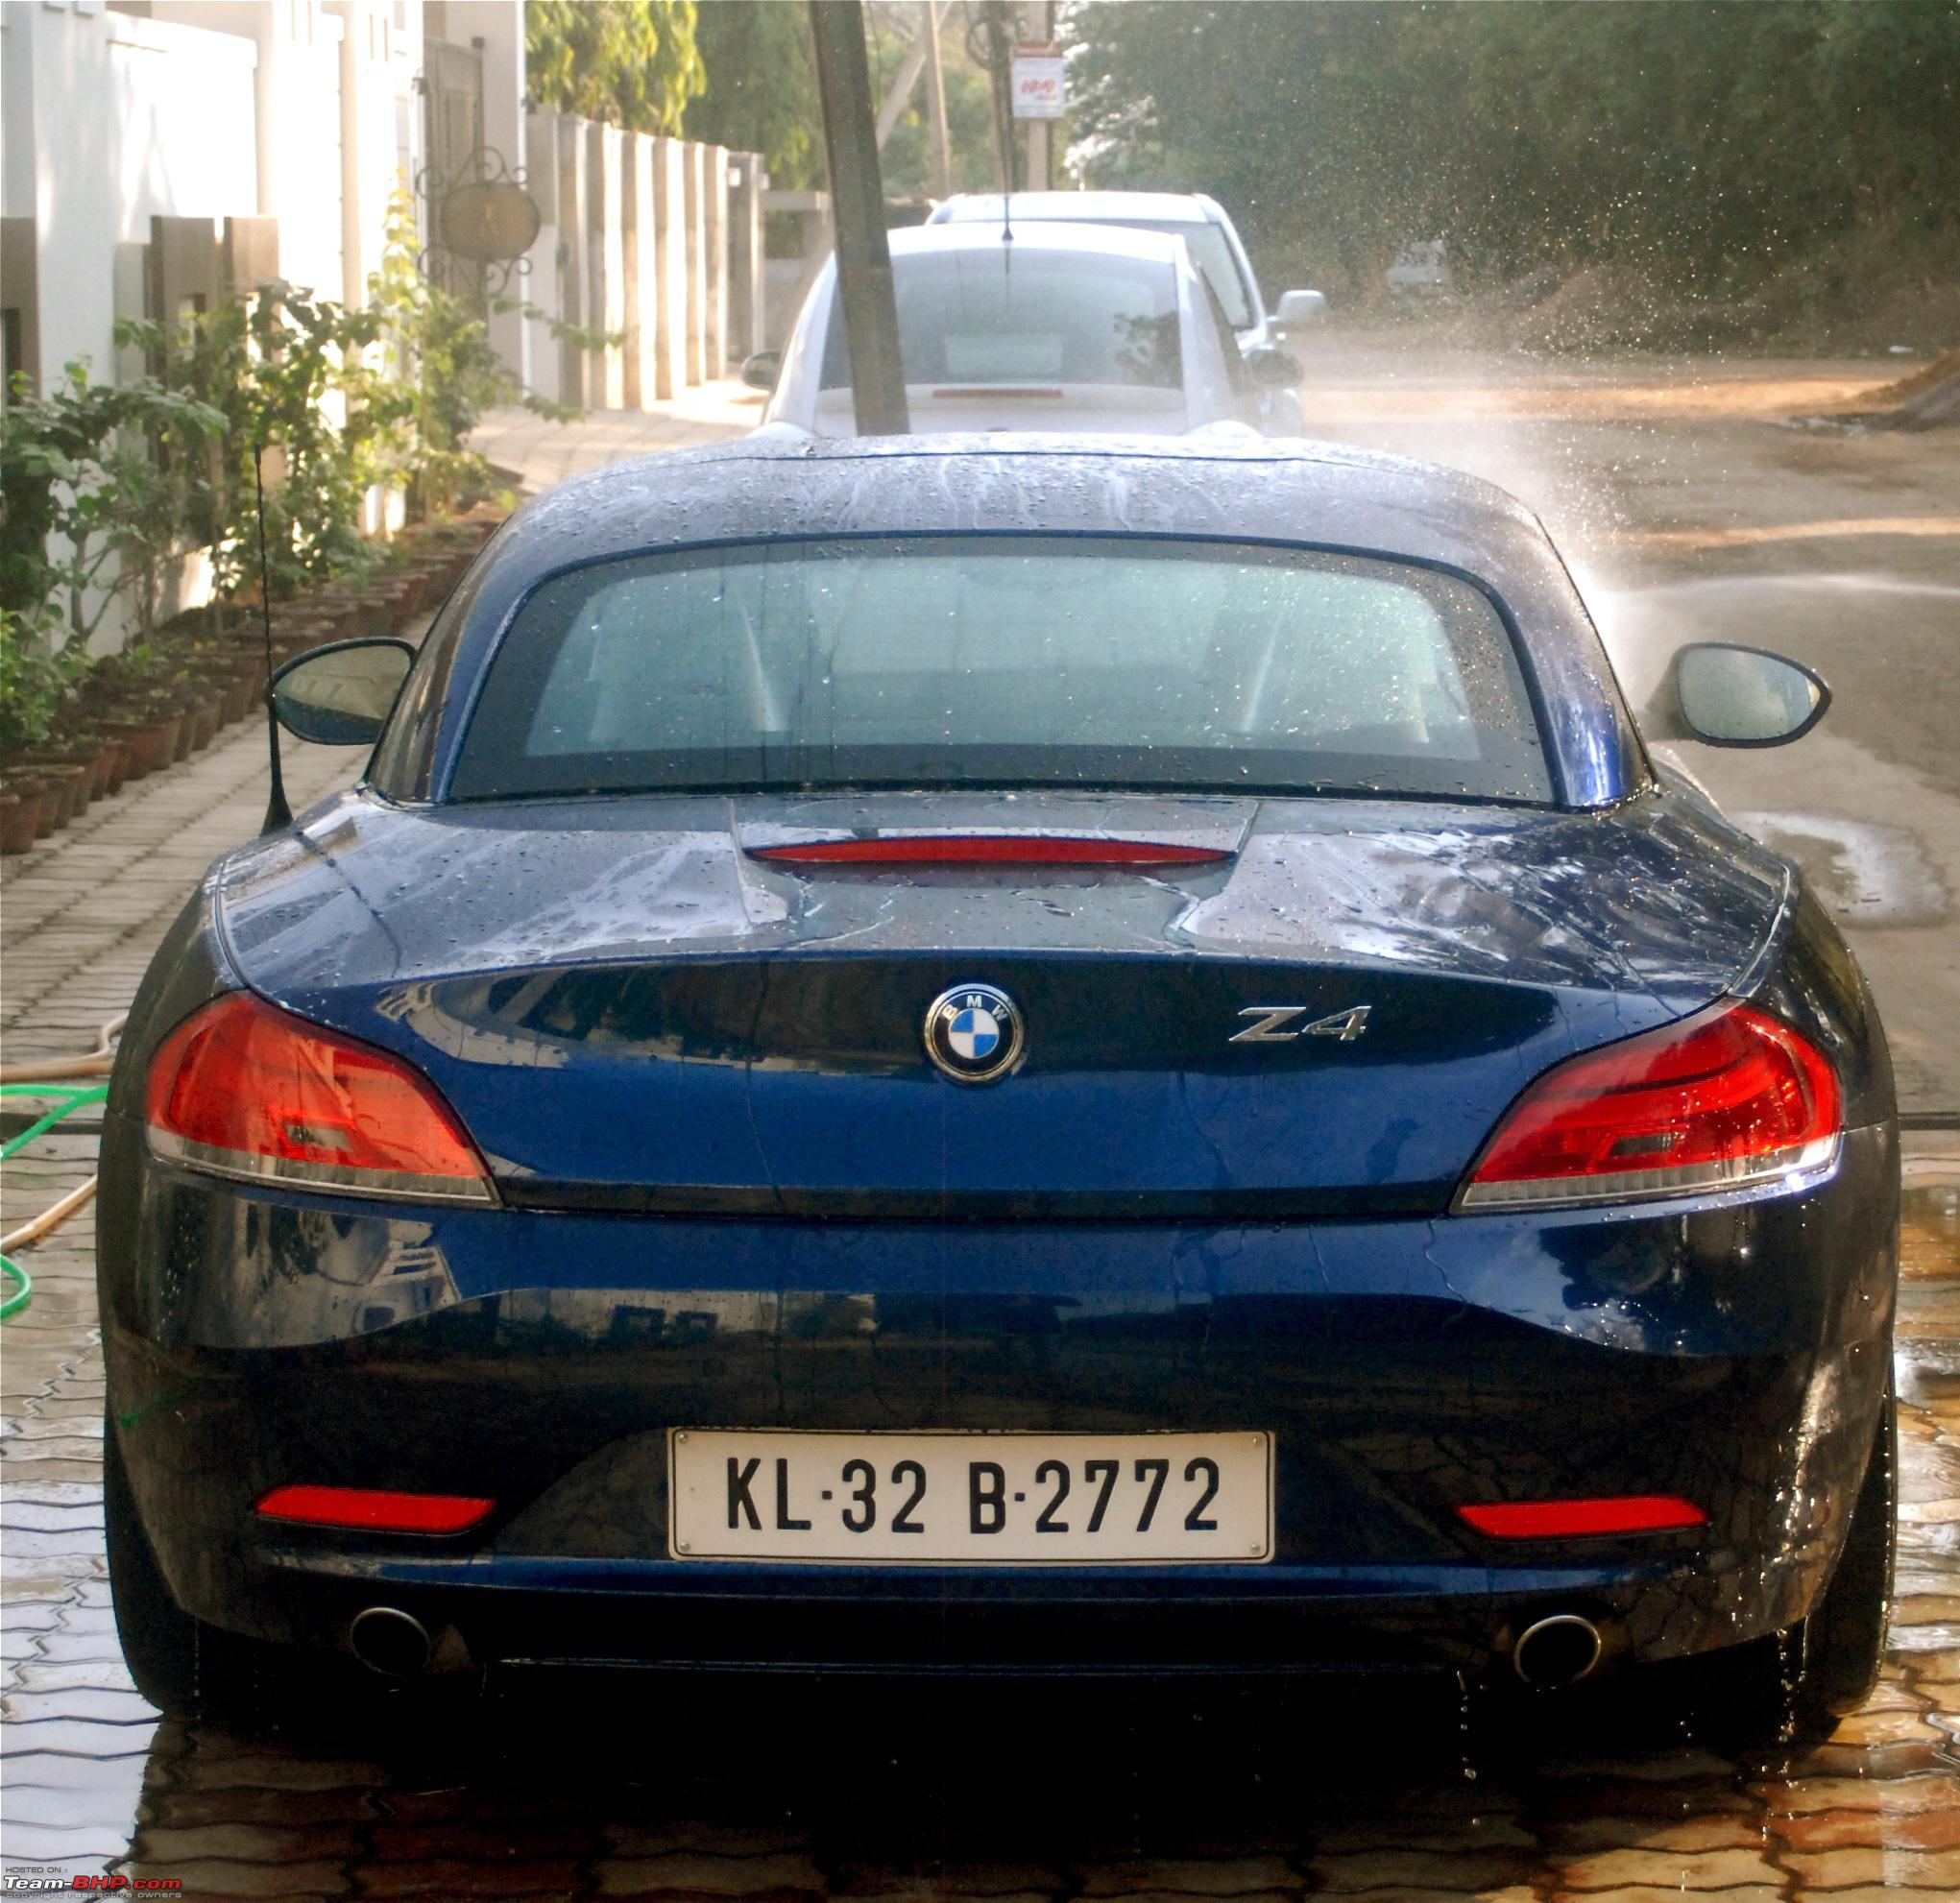 Bmw Z4 2 2 Review: Ownership Review Of The Infamous 'Lucifer' BMW Z4